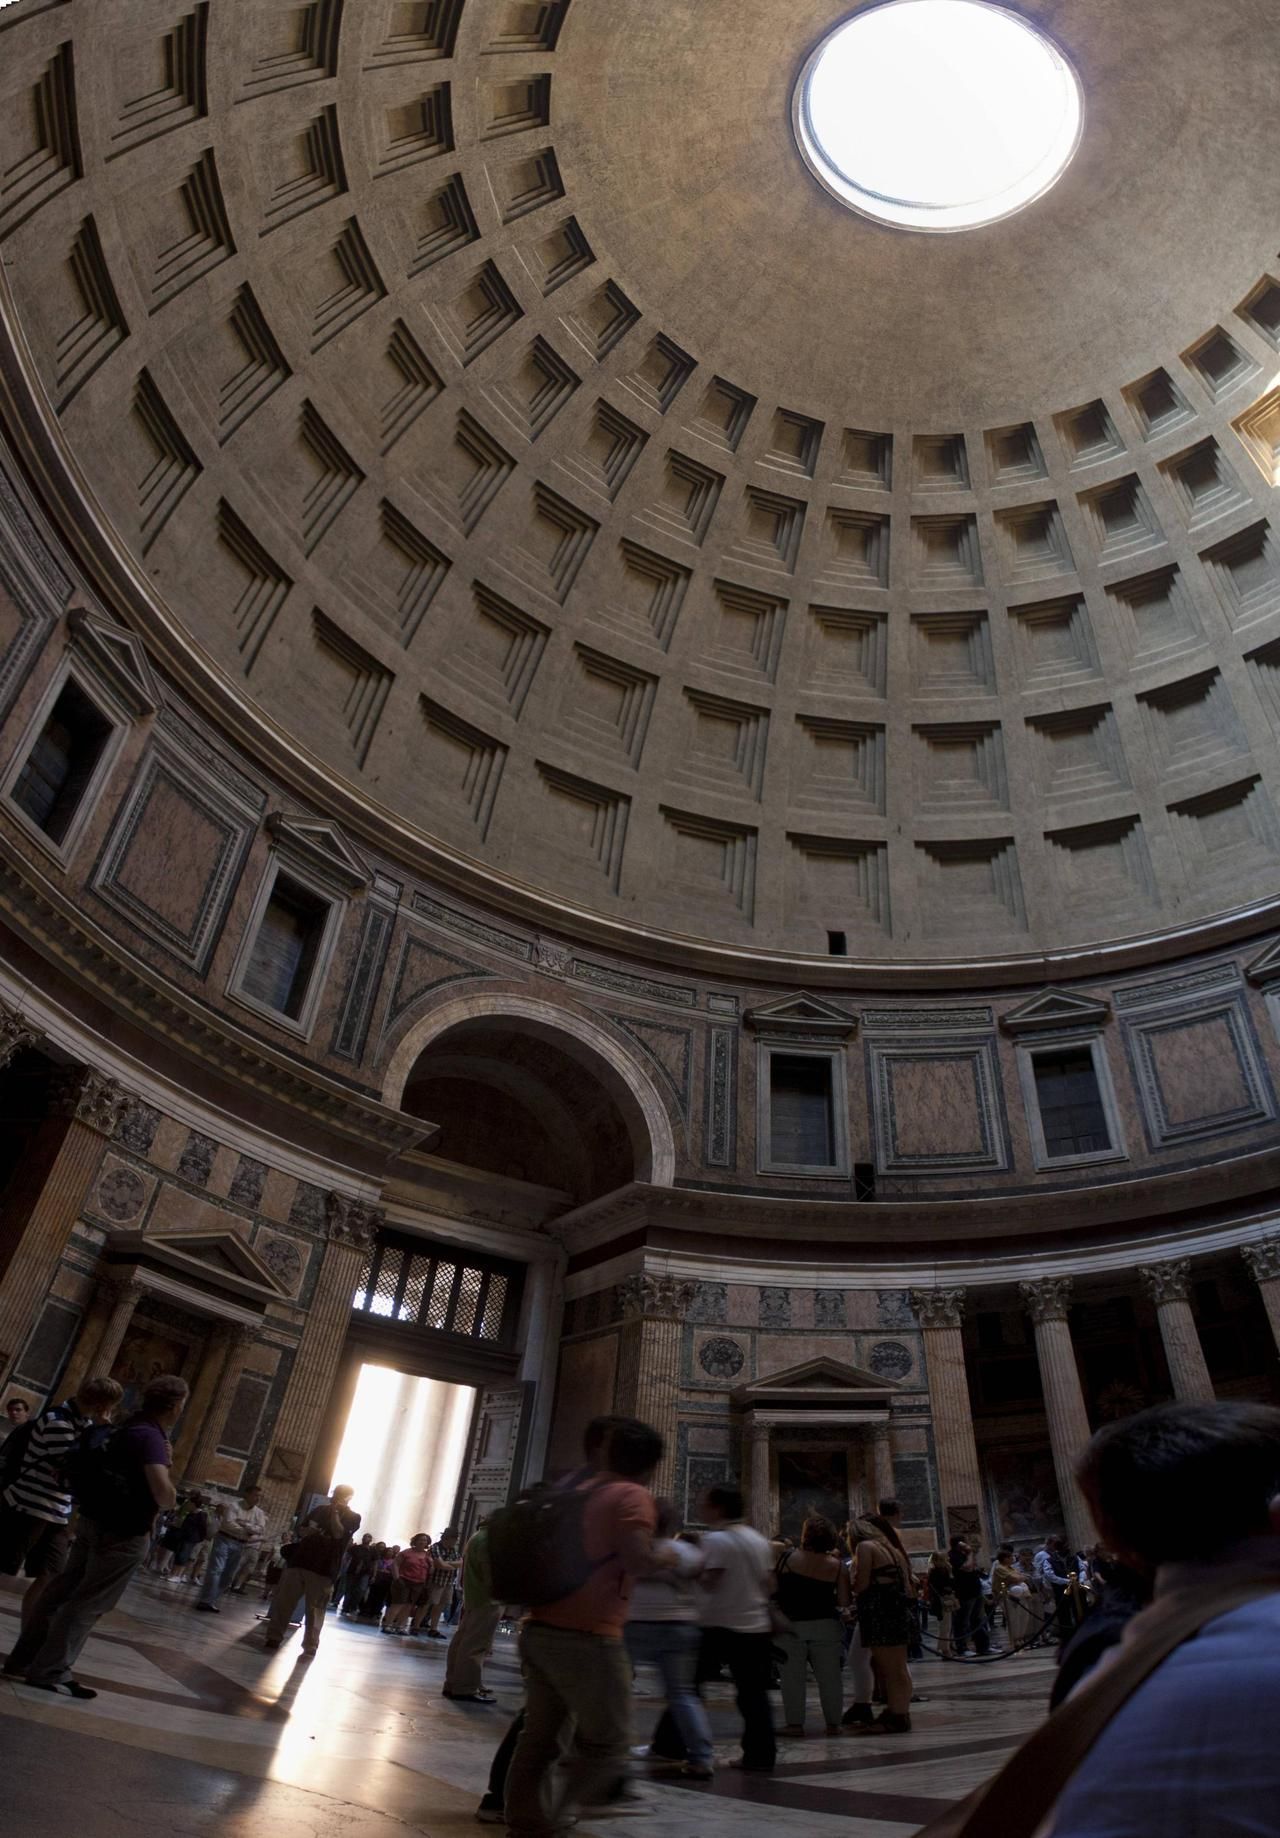 Inside the Pantheon, Rome Source: dirtyfries (reddit